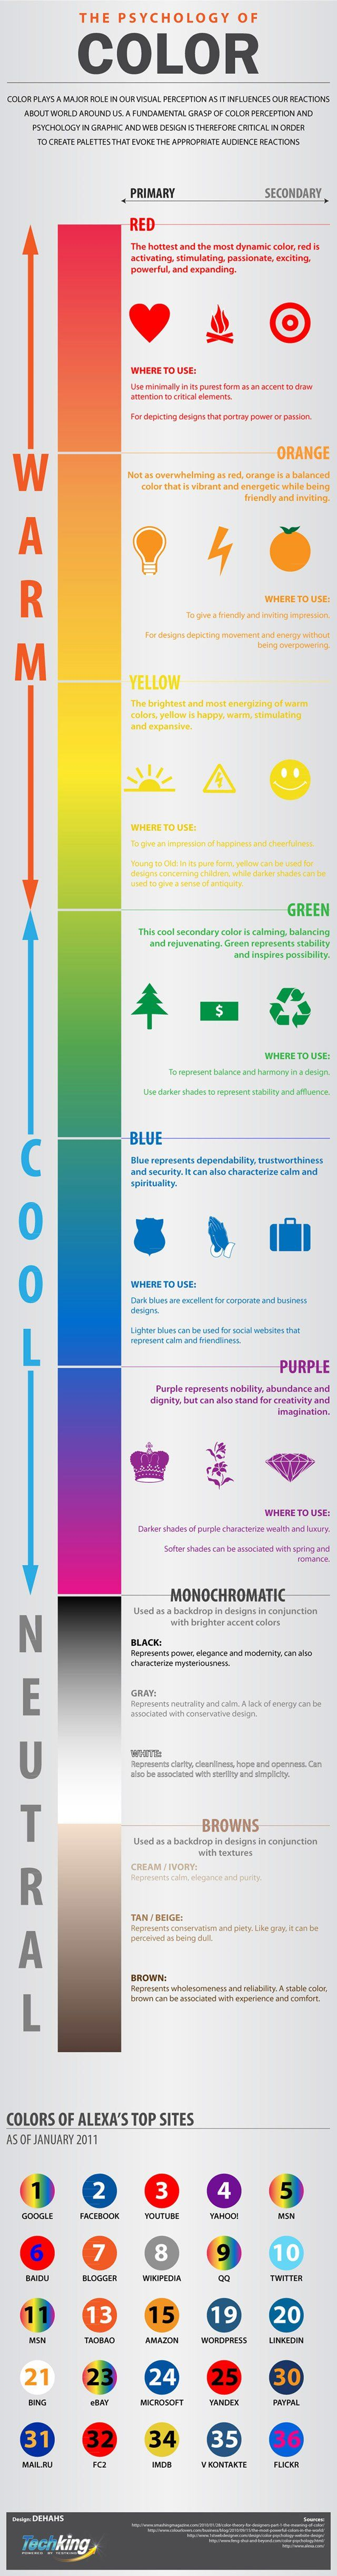 Infographic : The Psychology of Color for Web Designers - Designzzz